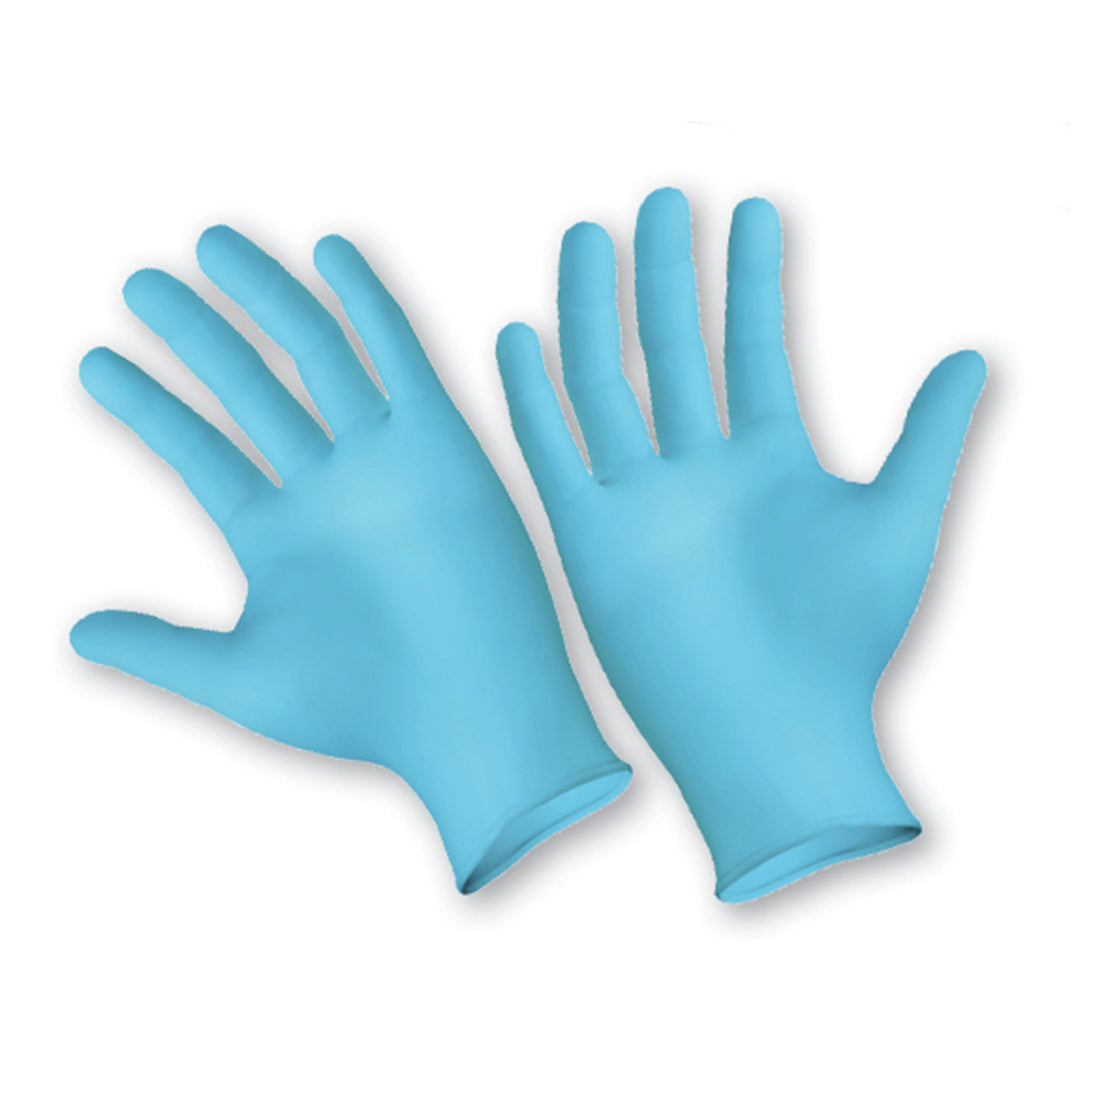 Blue Nitrile Disposable Gloves, Powder-Free Textured, 4 mil Latex-Free, Extra-Large